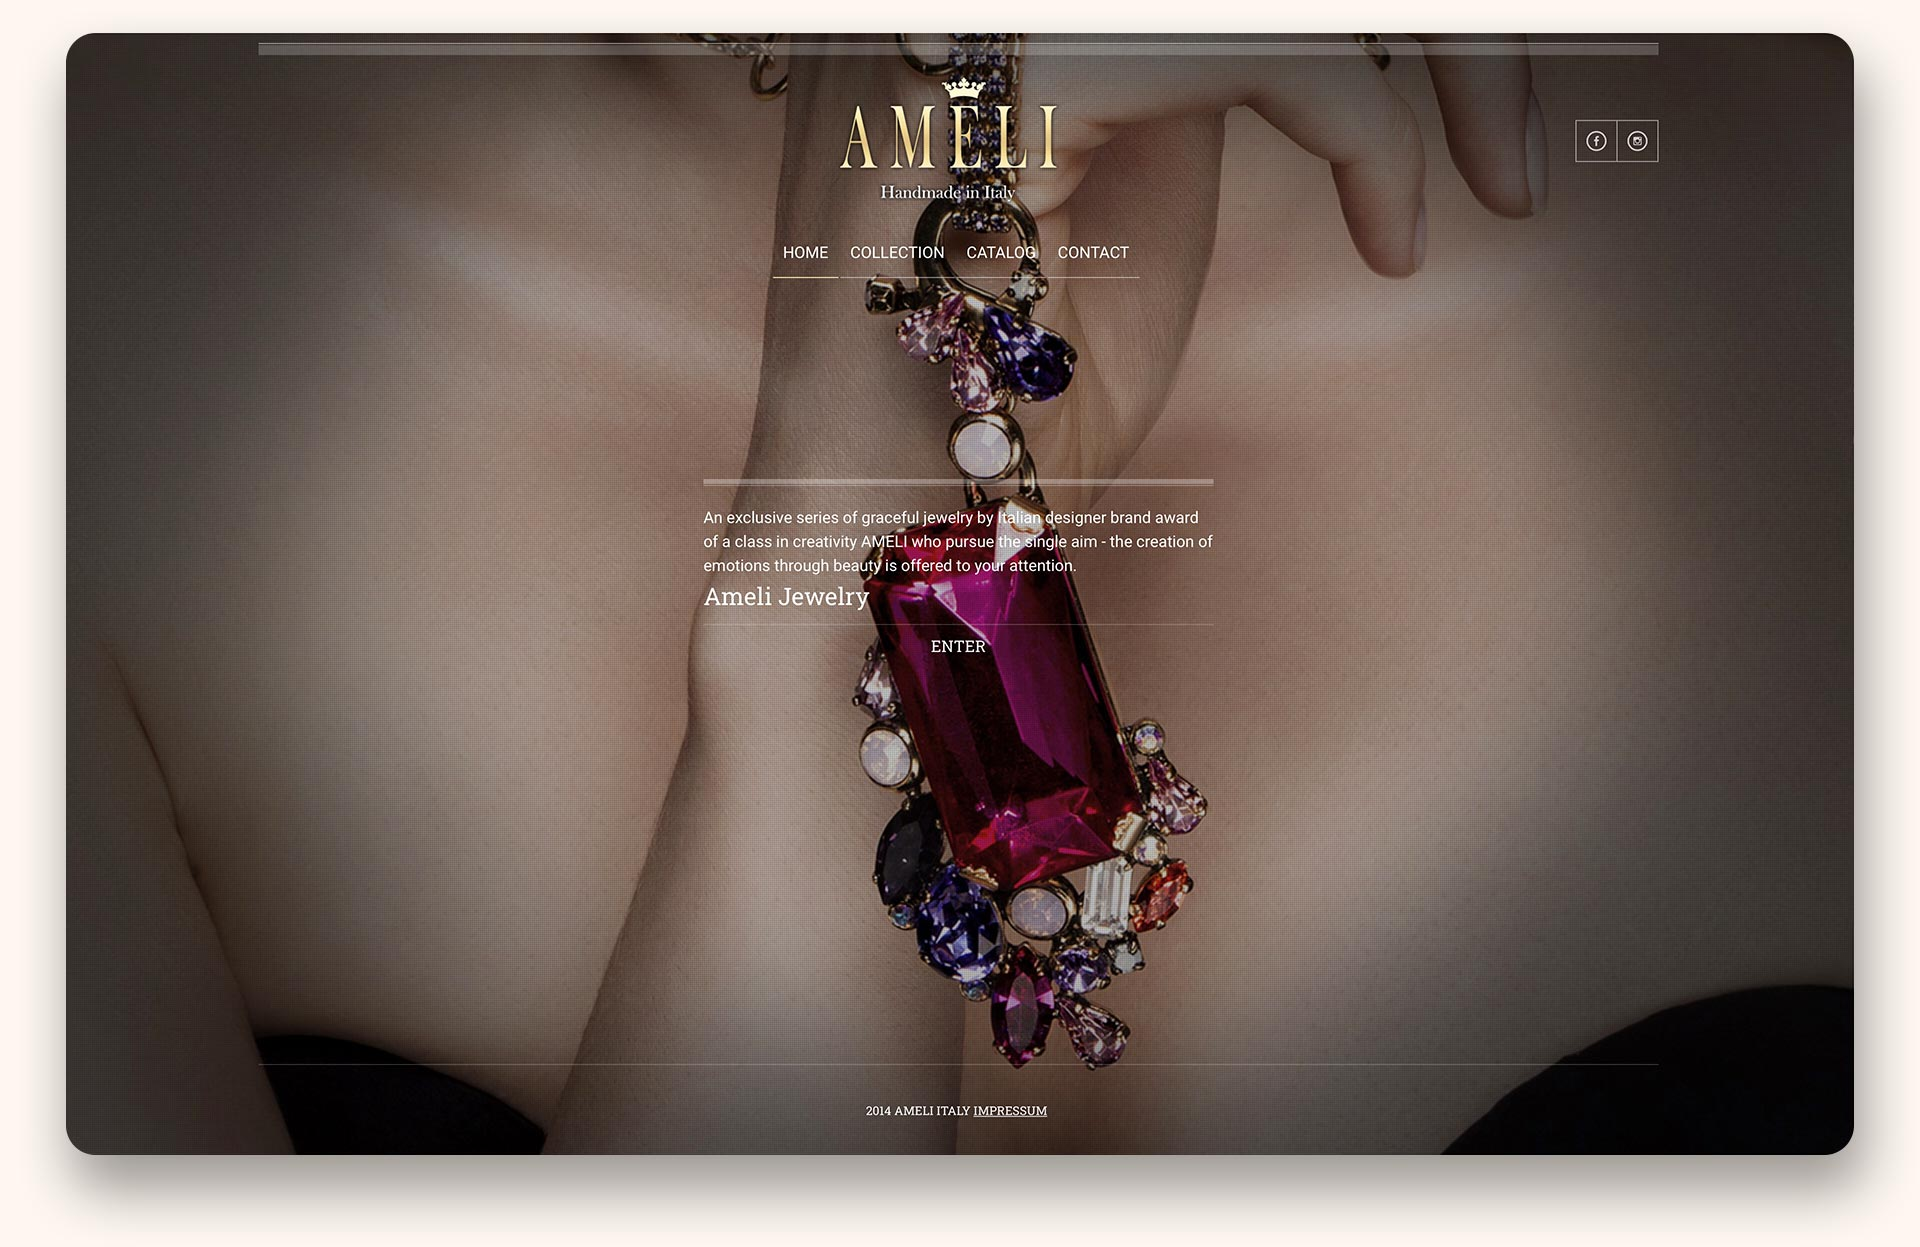 ameli-webdesign-desktop